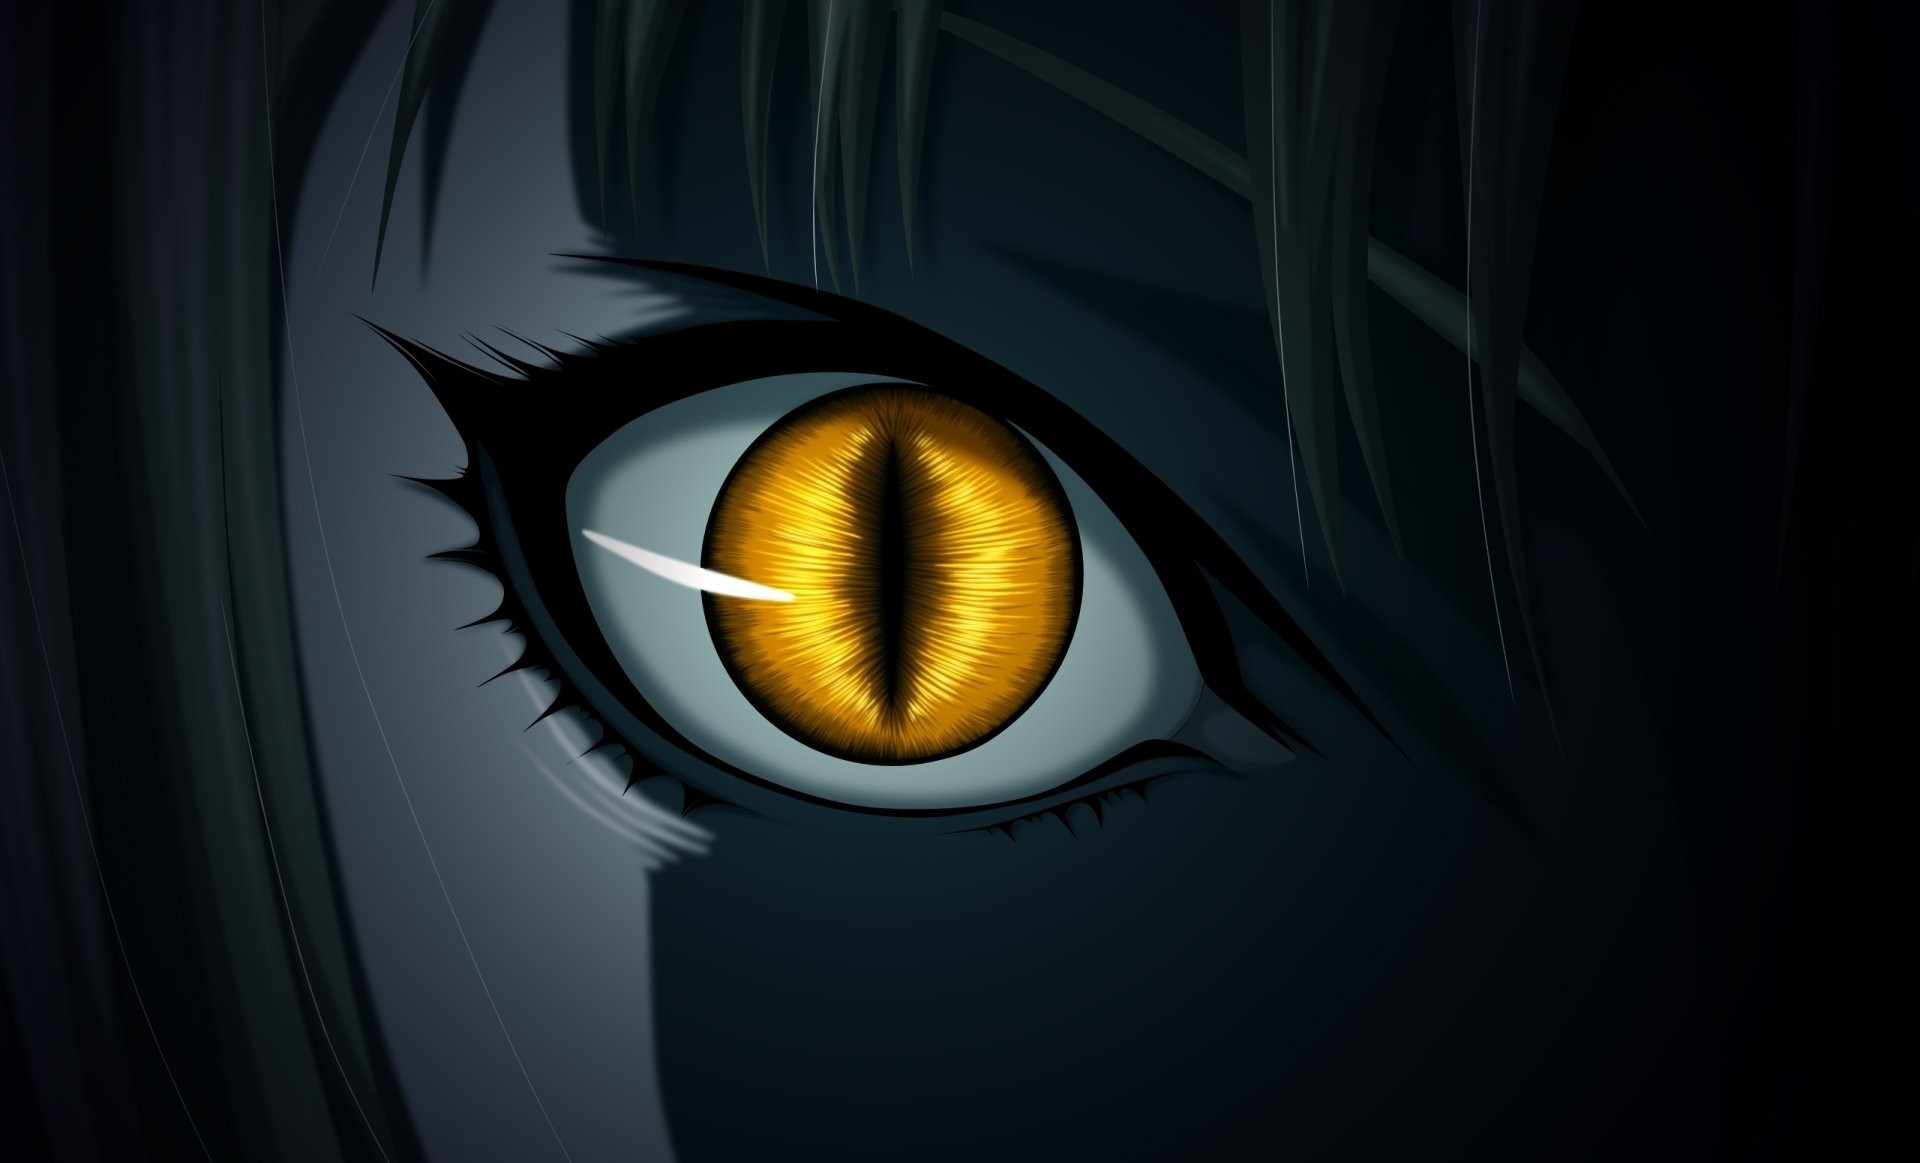 Res: 1920x1163, Anime - Claymore Düster Yellow Eyes Wallpaper